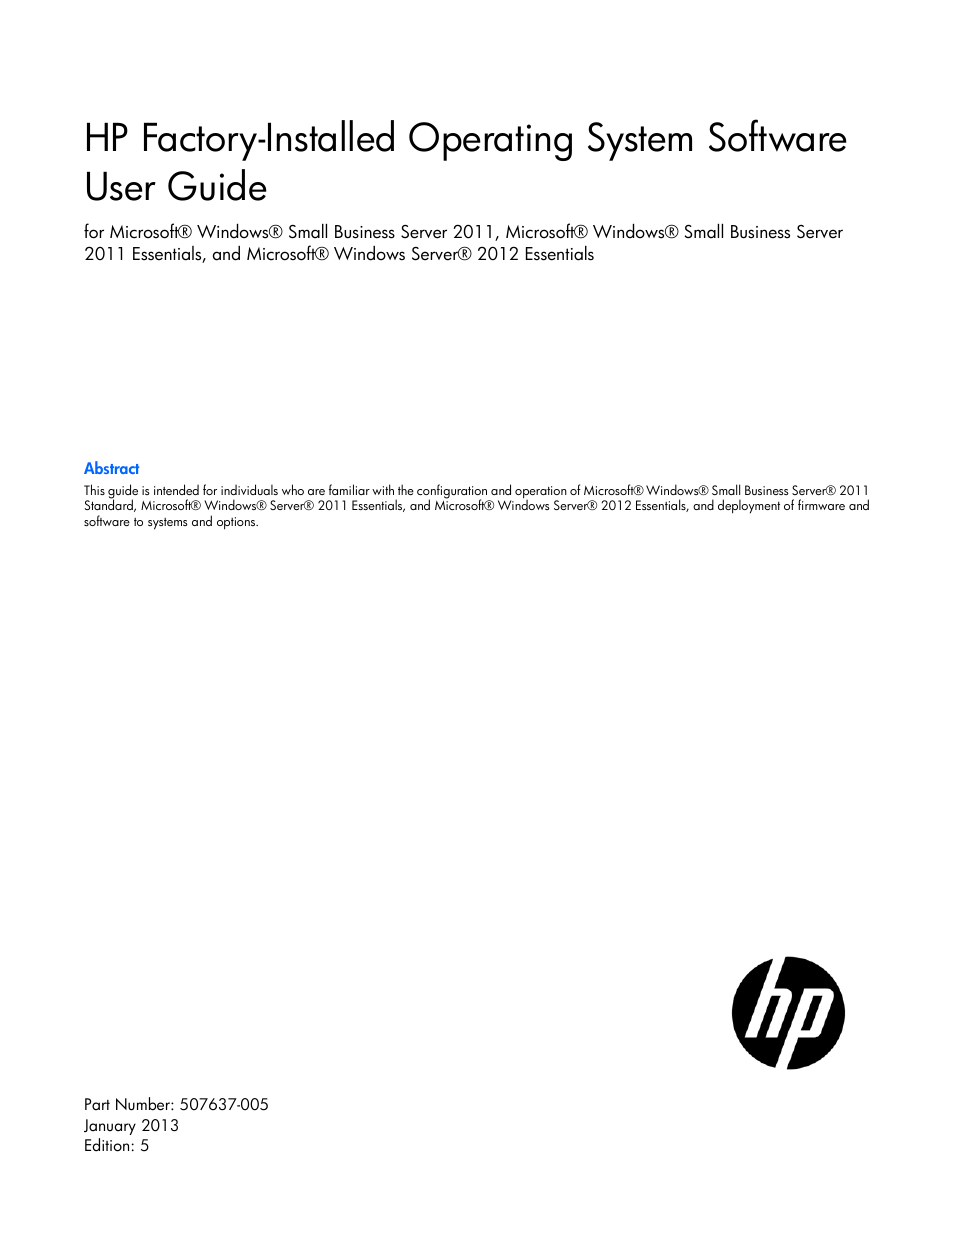 HP ProLiant DL360 G4 Server User Manual | 27 pages | Also for: ProLiant DL380  G5 Server, ProLiant ML570 G3 Server, ProLiant ML310 G3 Server, ProLiant  DL320 ...